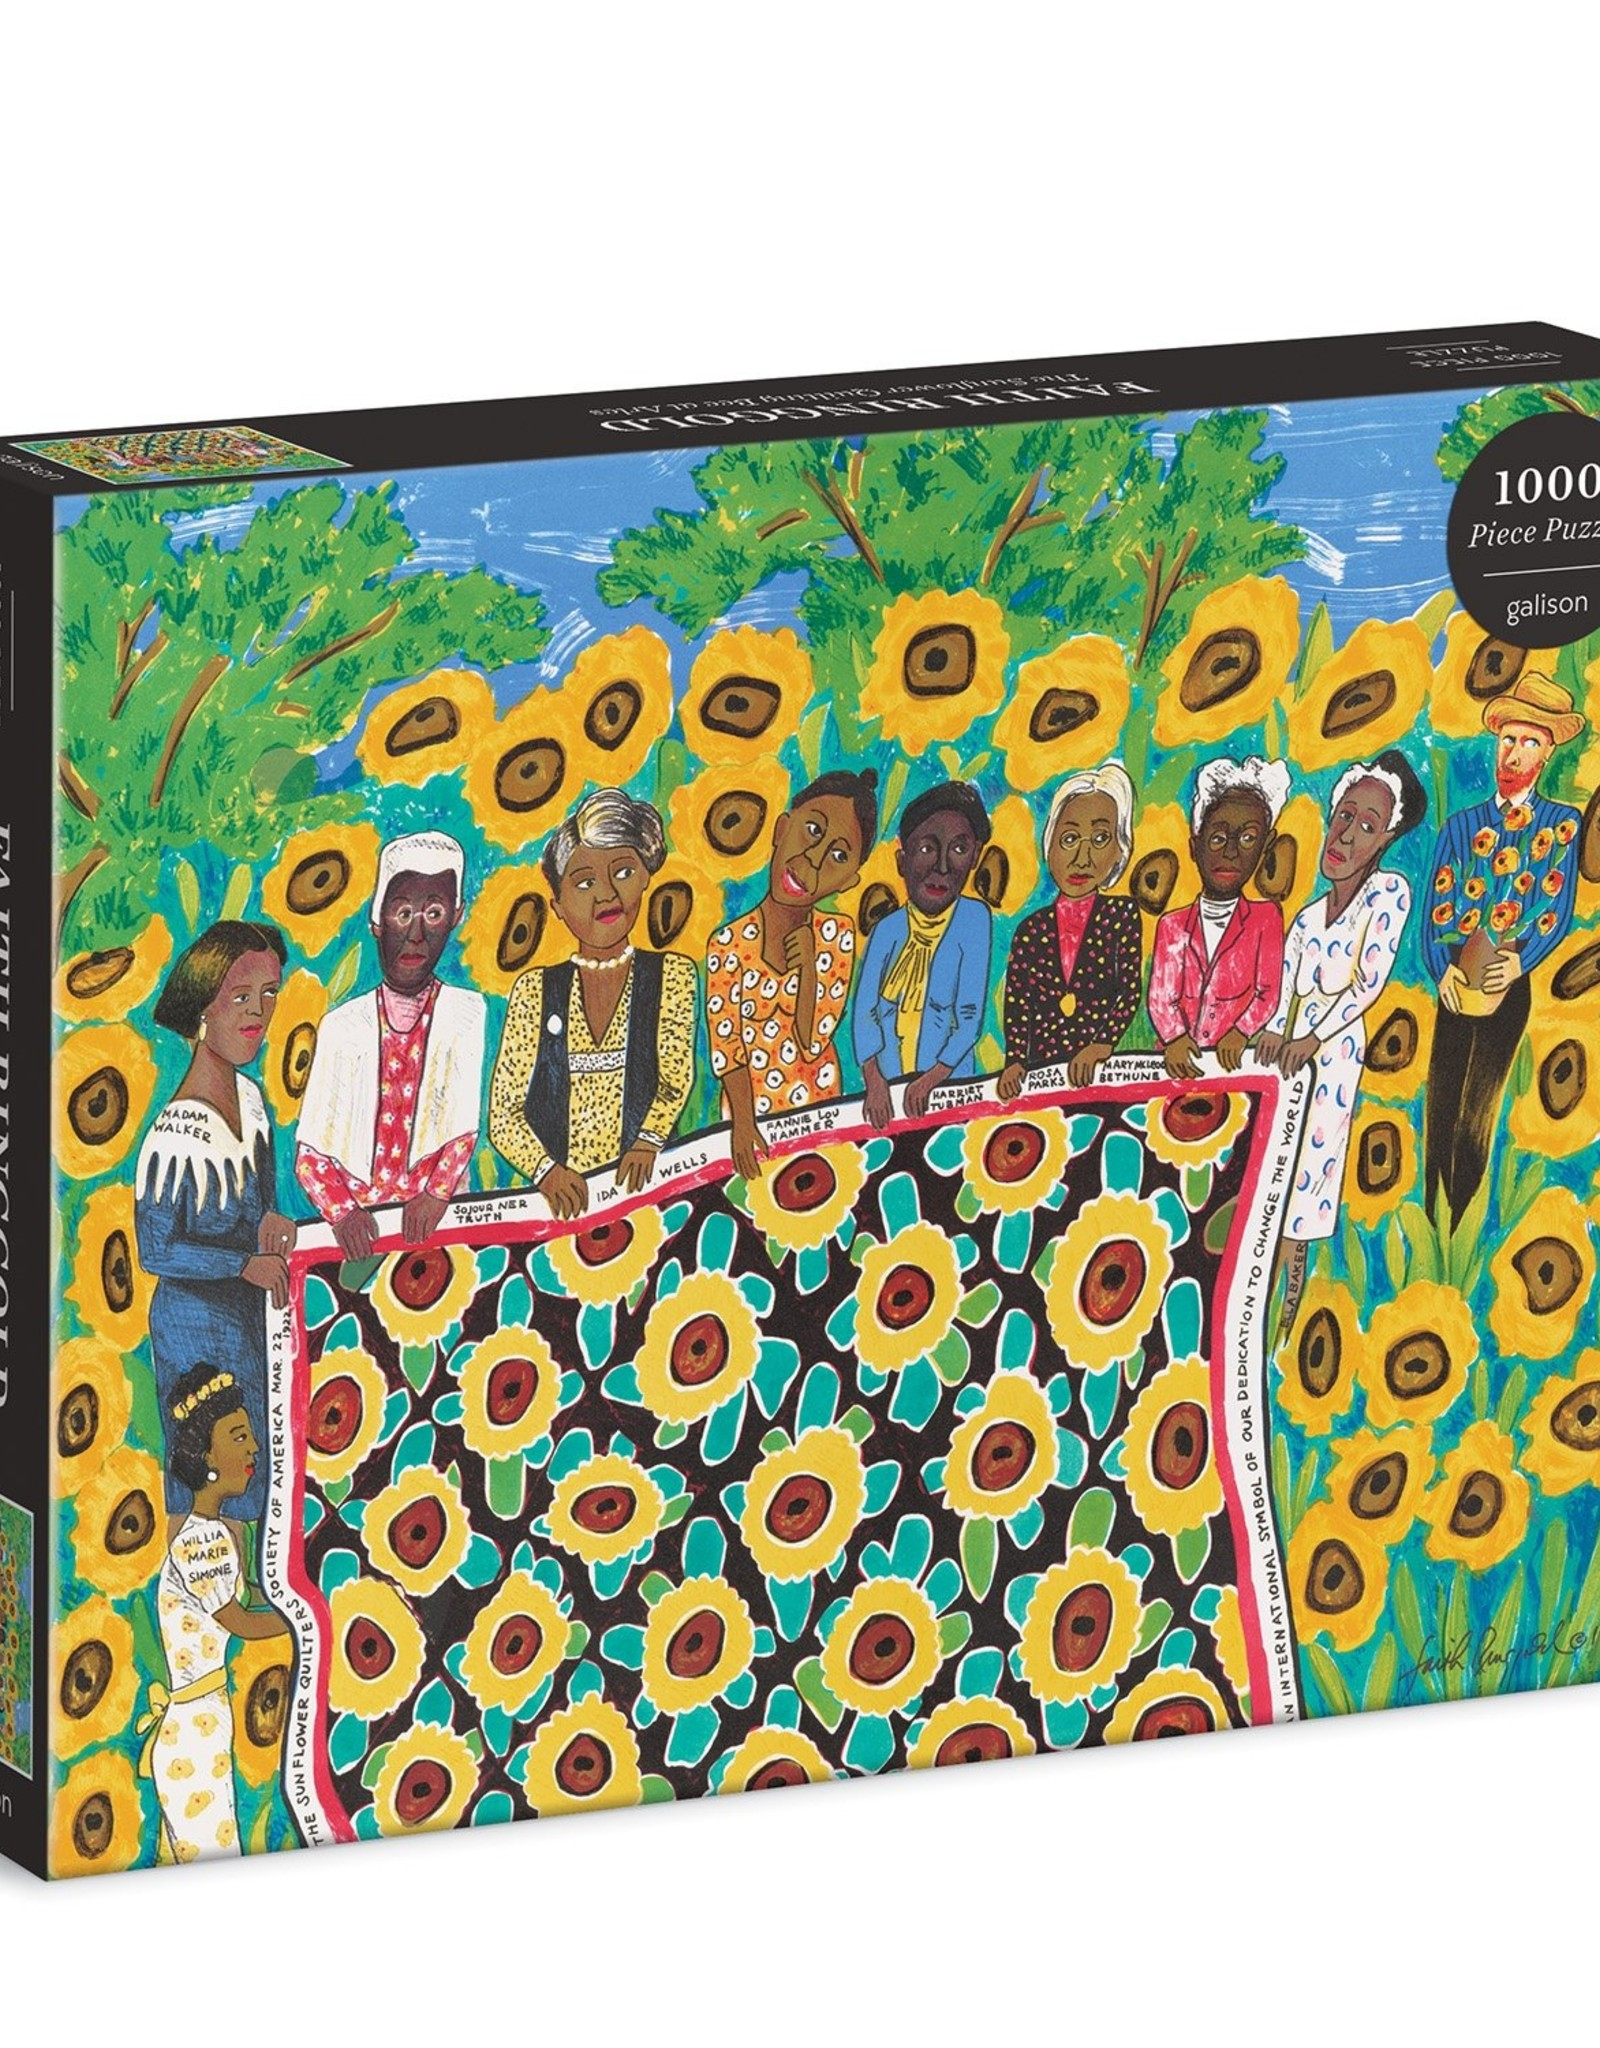 Chronicle Books Puzzle - The Sunflower Quilting Bee at Arles